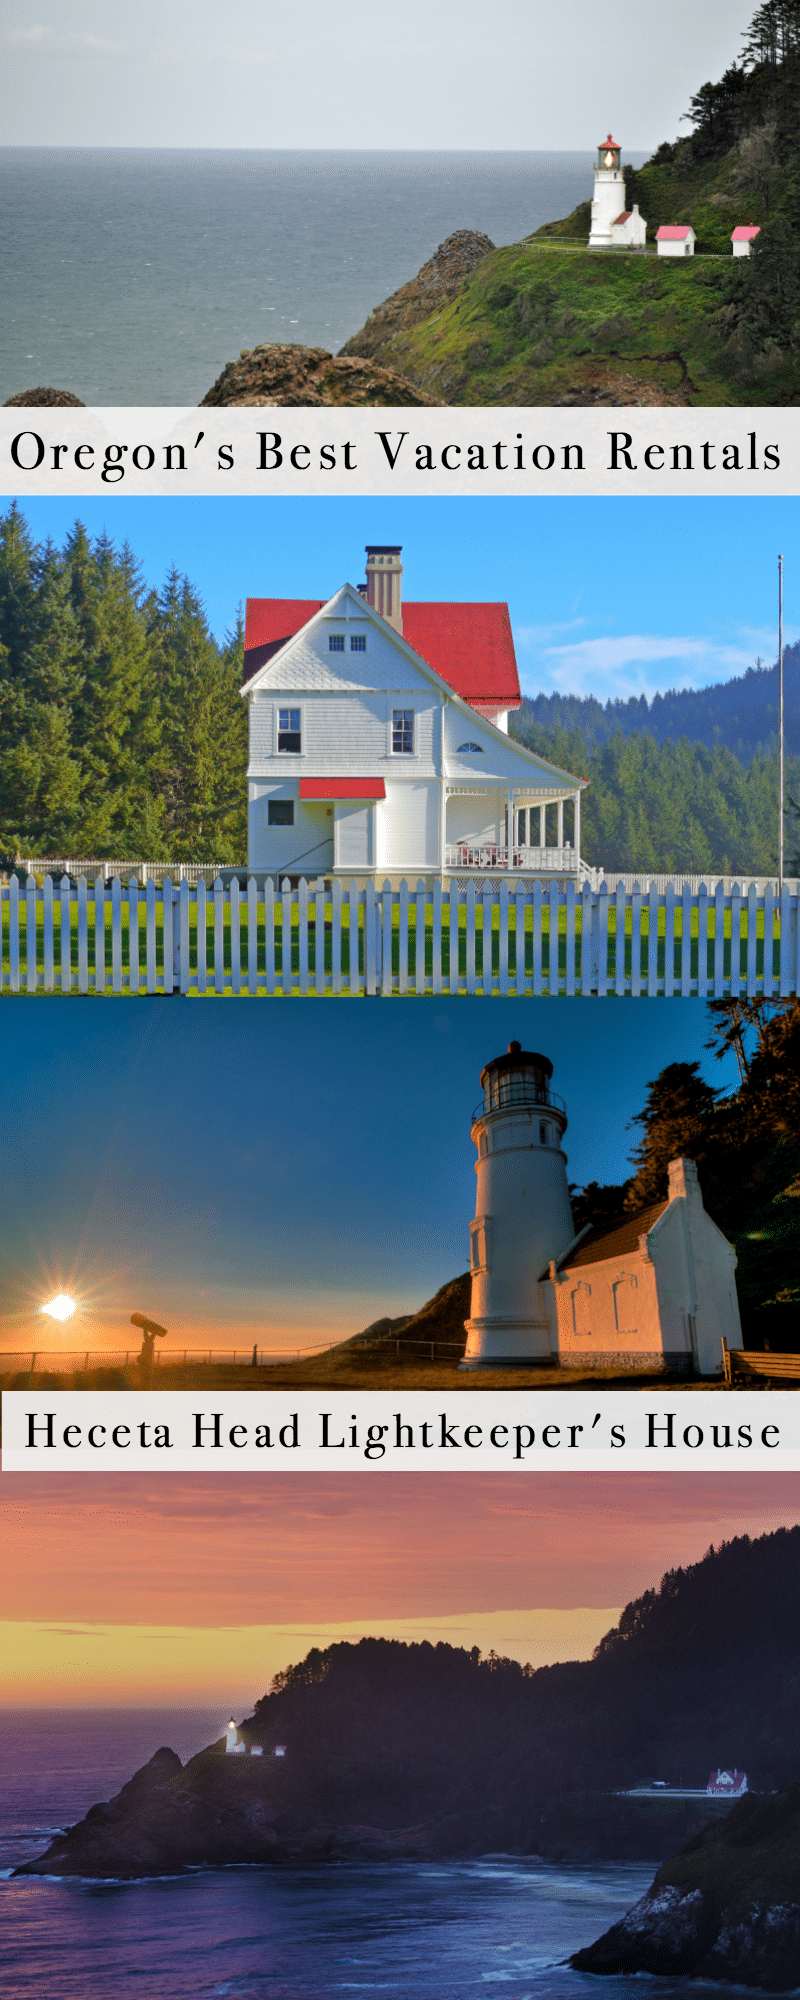 The Best Vacation Rentals in Oregon: Heceta Head Lighthouse